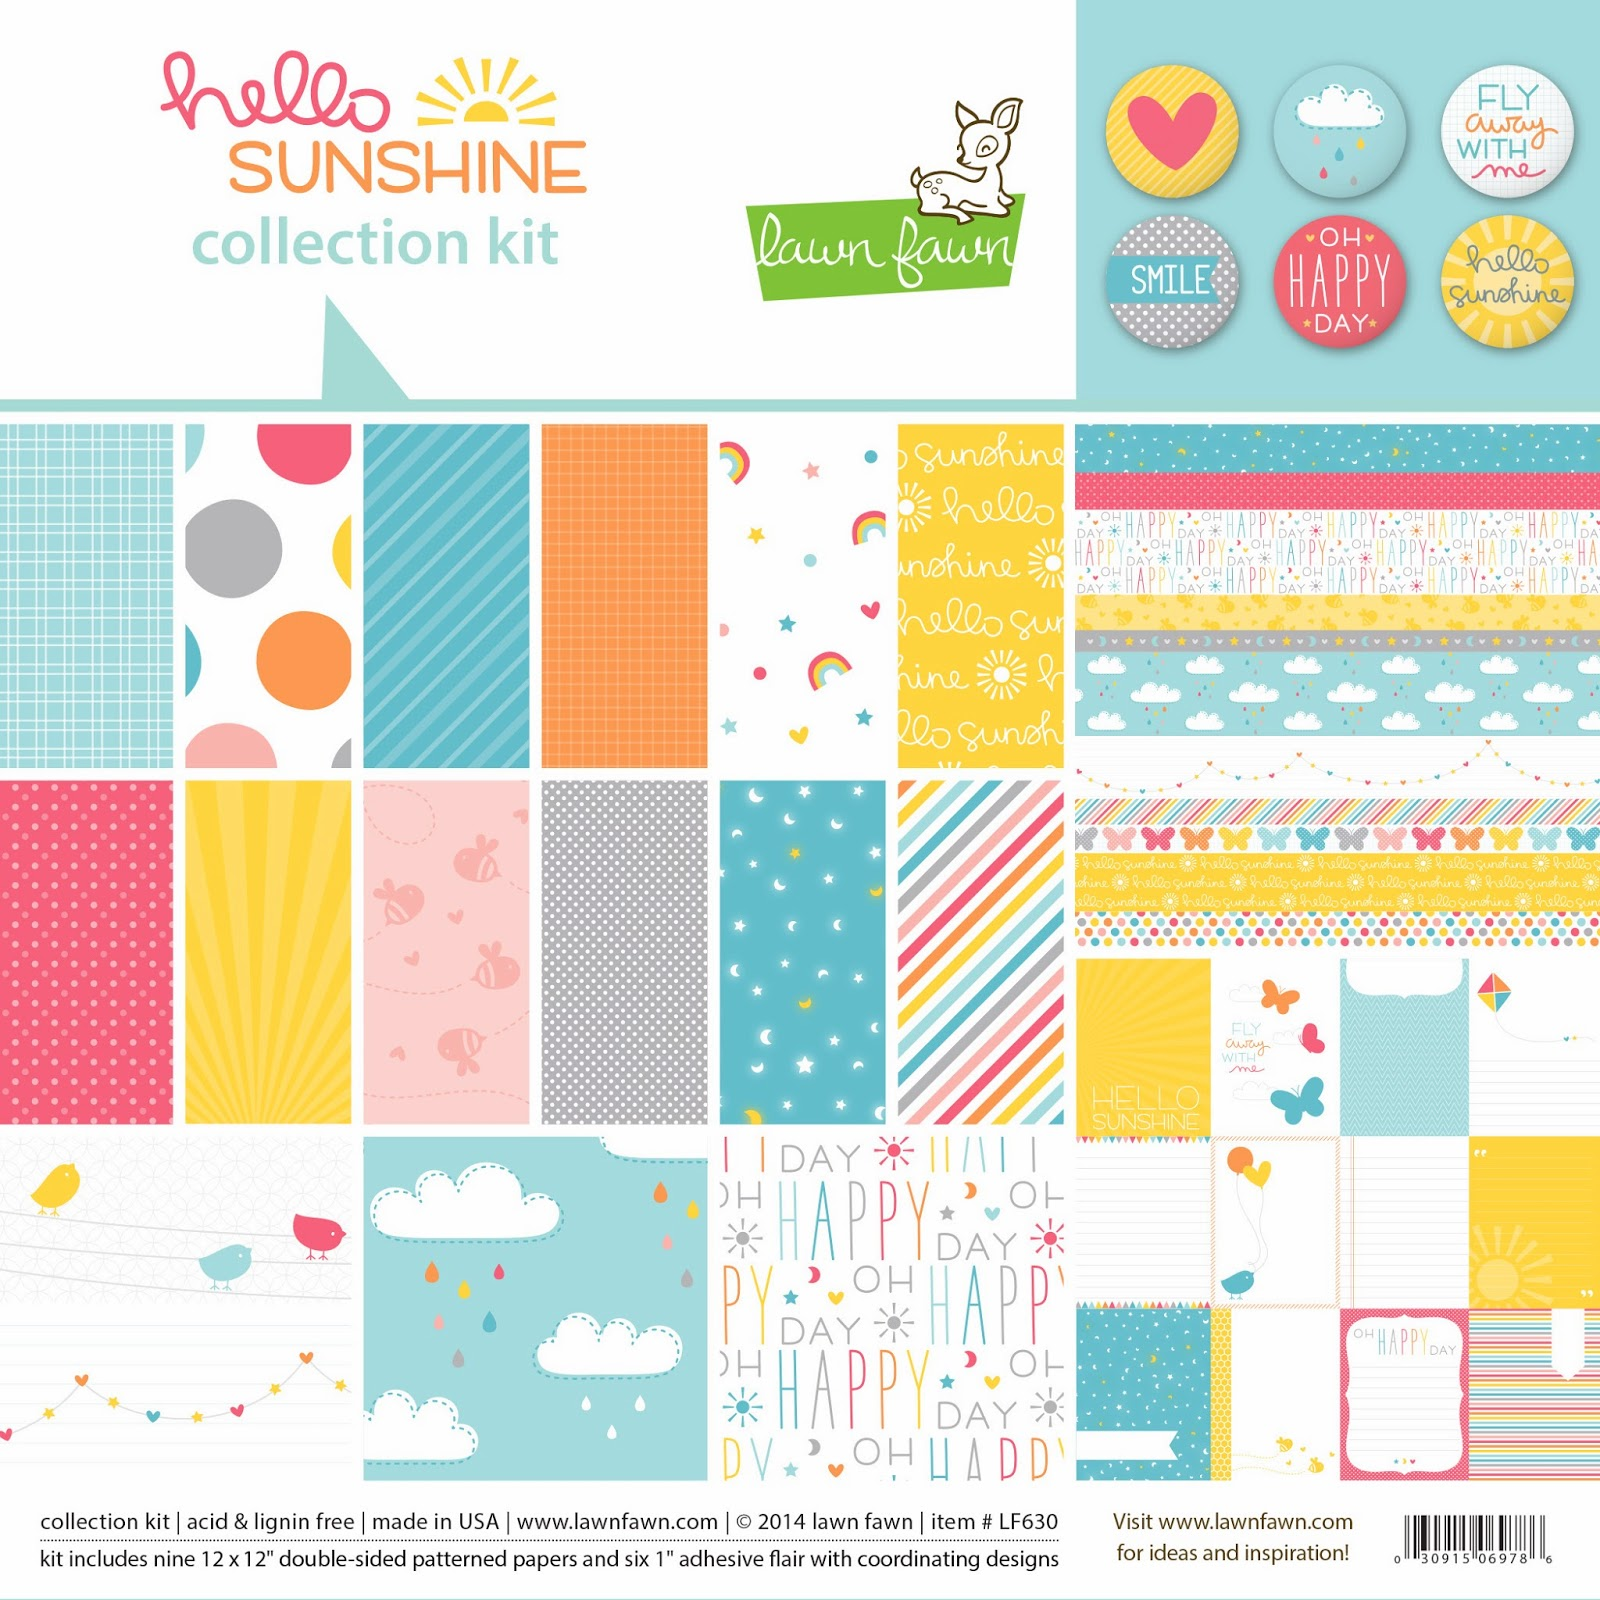 http://www.lawnfawn.com/collections/new-products/products/hello-sunshine-collection-kit